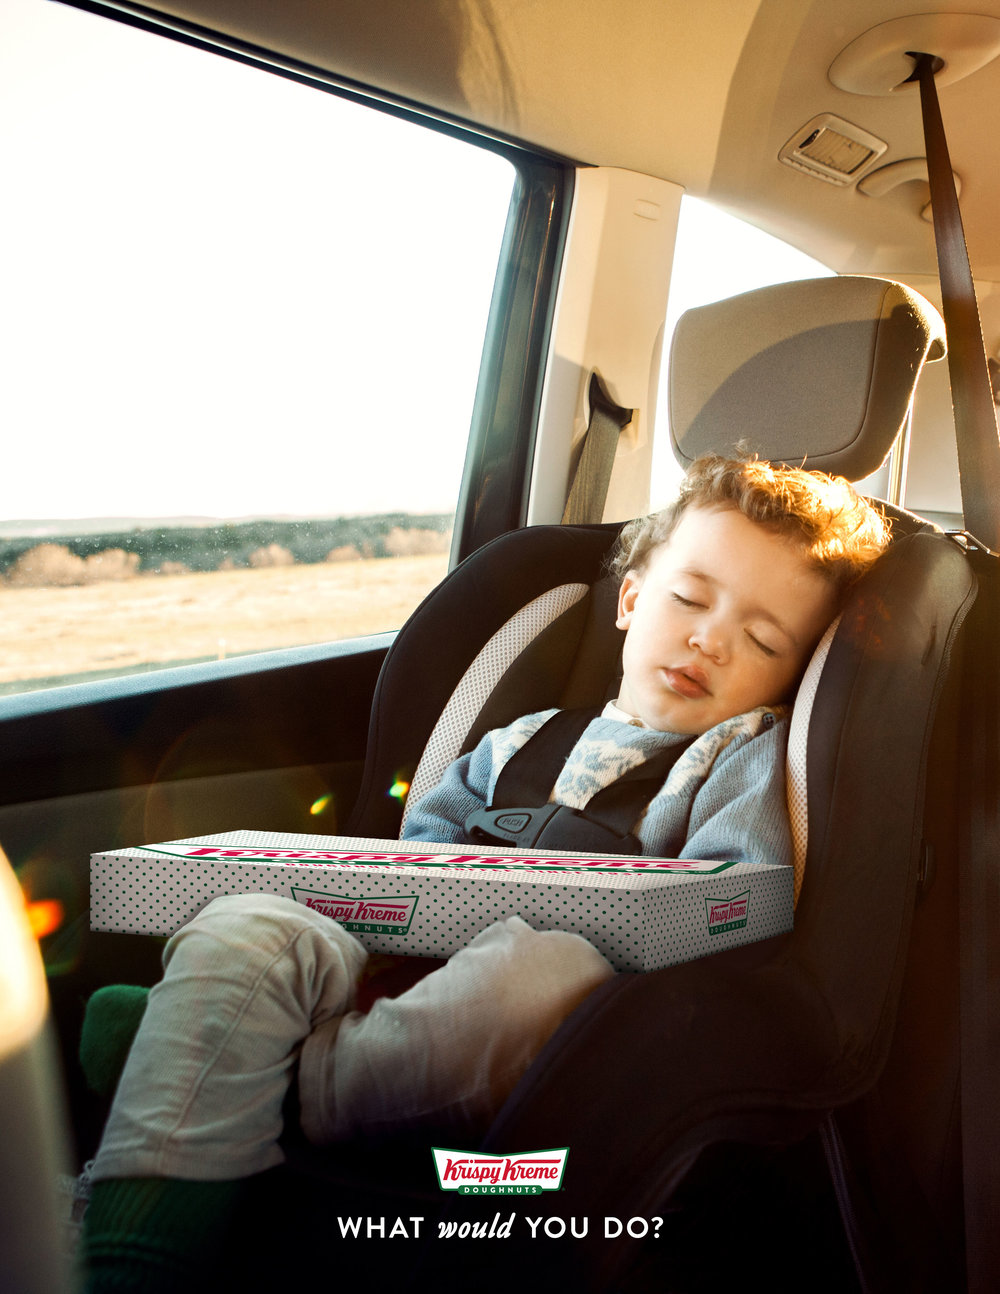 Would you risk waking a sleeping child for a doughnut?